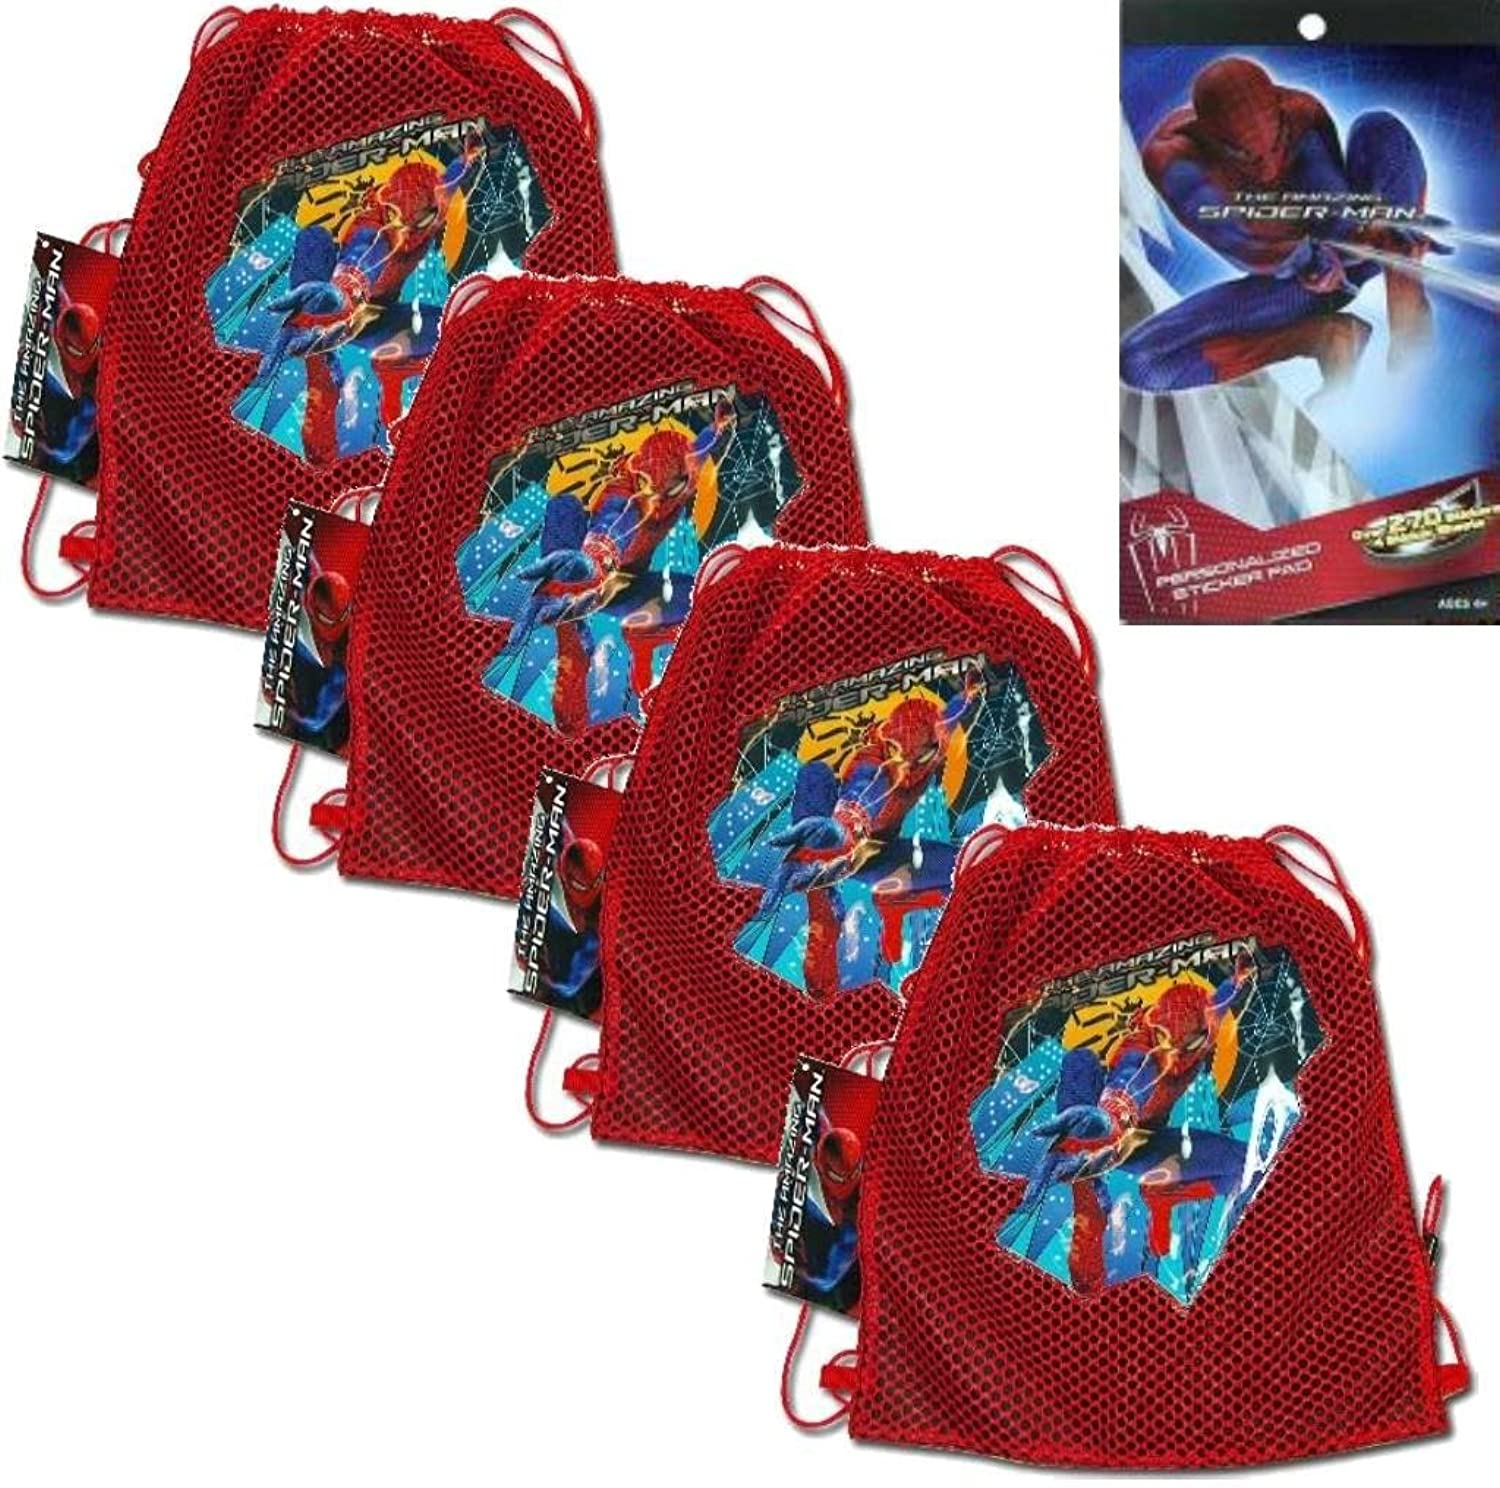 5-Piece Marvels The Amazing Spider-Man Spider-Man Spider-Man Mesh Sling Tote Bags - 4 The Amazing Spider-man Mesh Front Sling Backpack Tote Party Favor Bags (10.5  x 12 ) PLUS 1 Spiderman Sticker Pad with over 270 Stickers (4 Sheets) for Kids by TopValueSupplies (English Manua fccf55